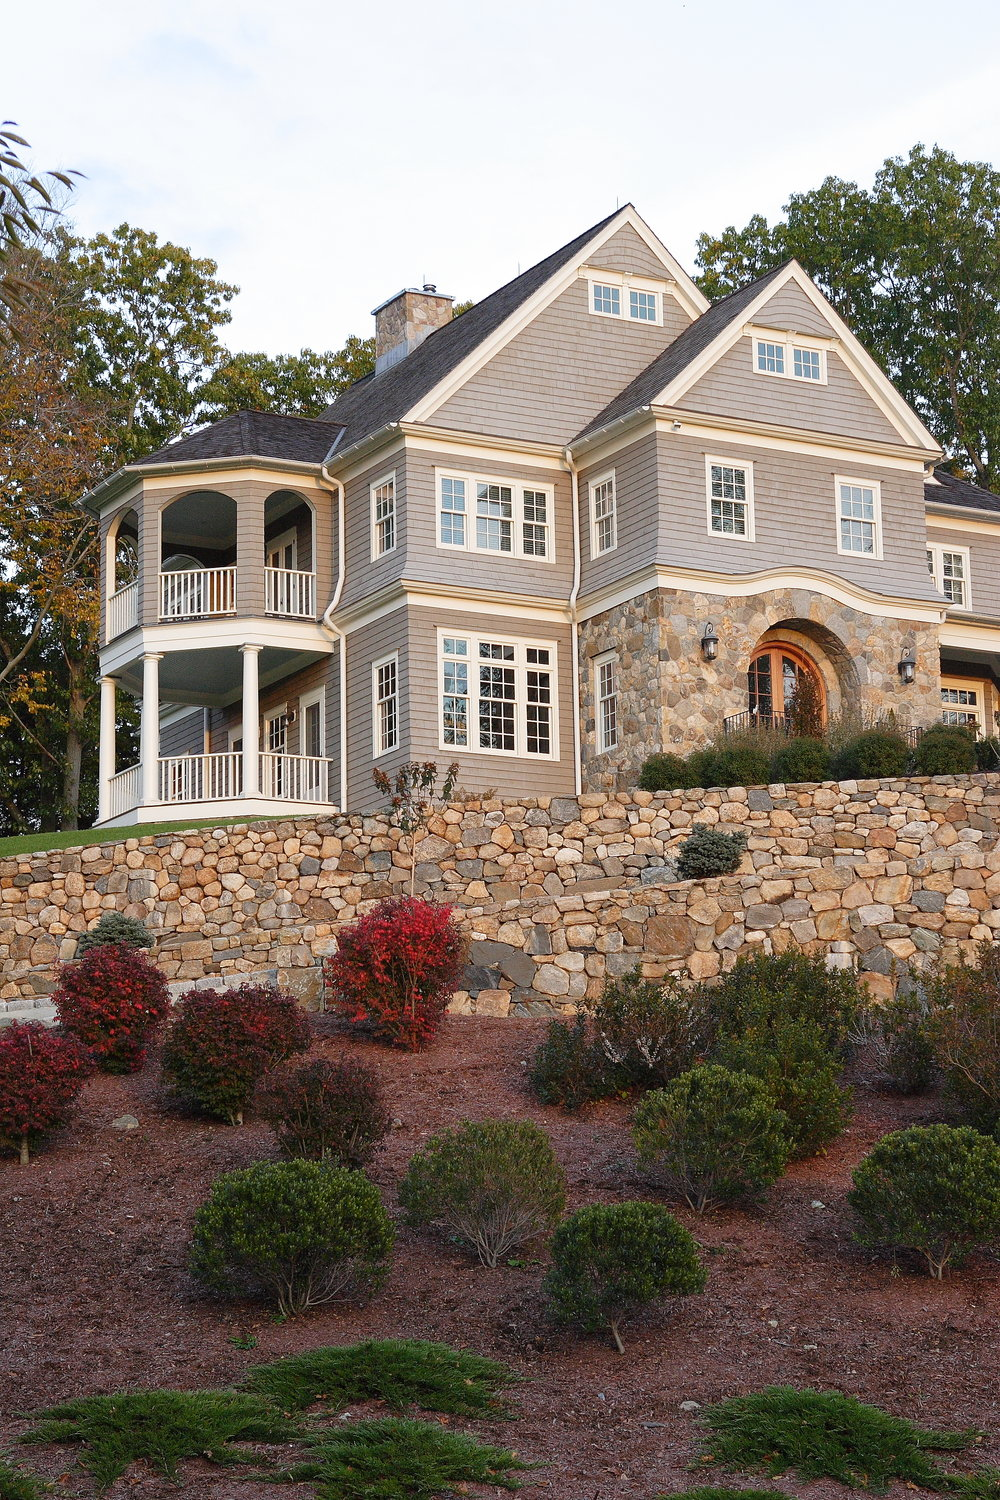 MATERIALS USED: CT FIELDSTONE PHOTO CREDIT: TALLMAN SEGERSON BUILDERS